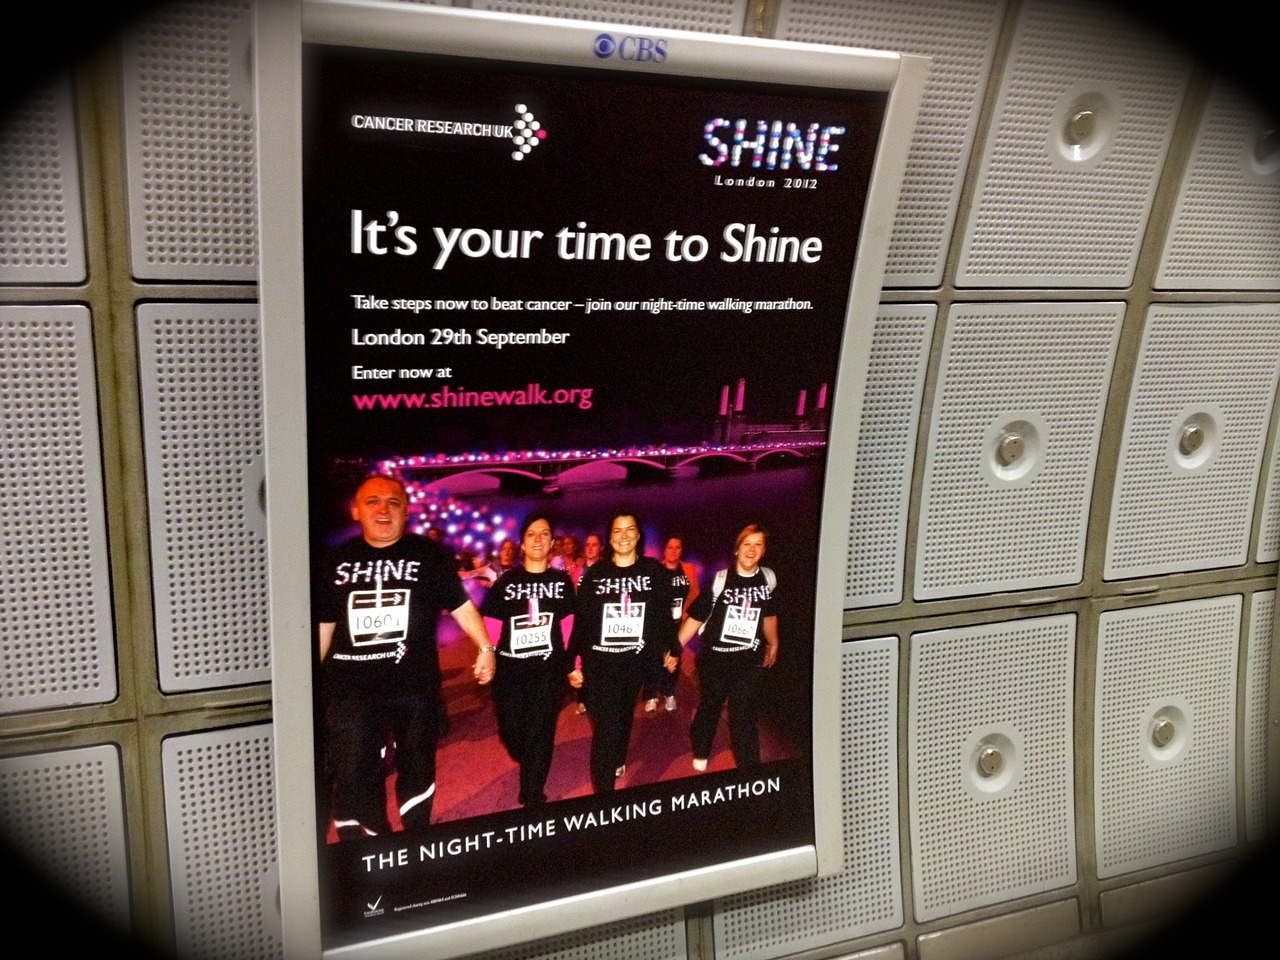 It's your time to Shine | Another good example of creative communications from Cancer Research - the UK's No. 1 charity brand according to the Charity Brand Index 2011 compiled by Third Sector Research.